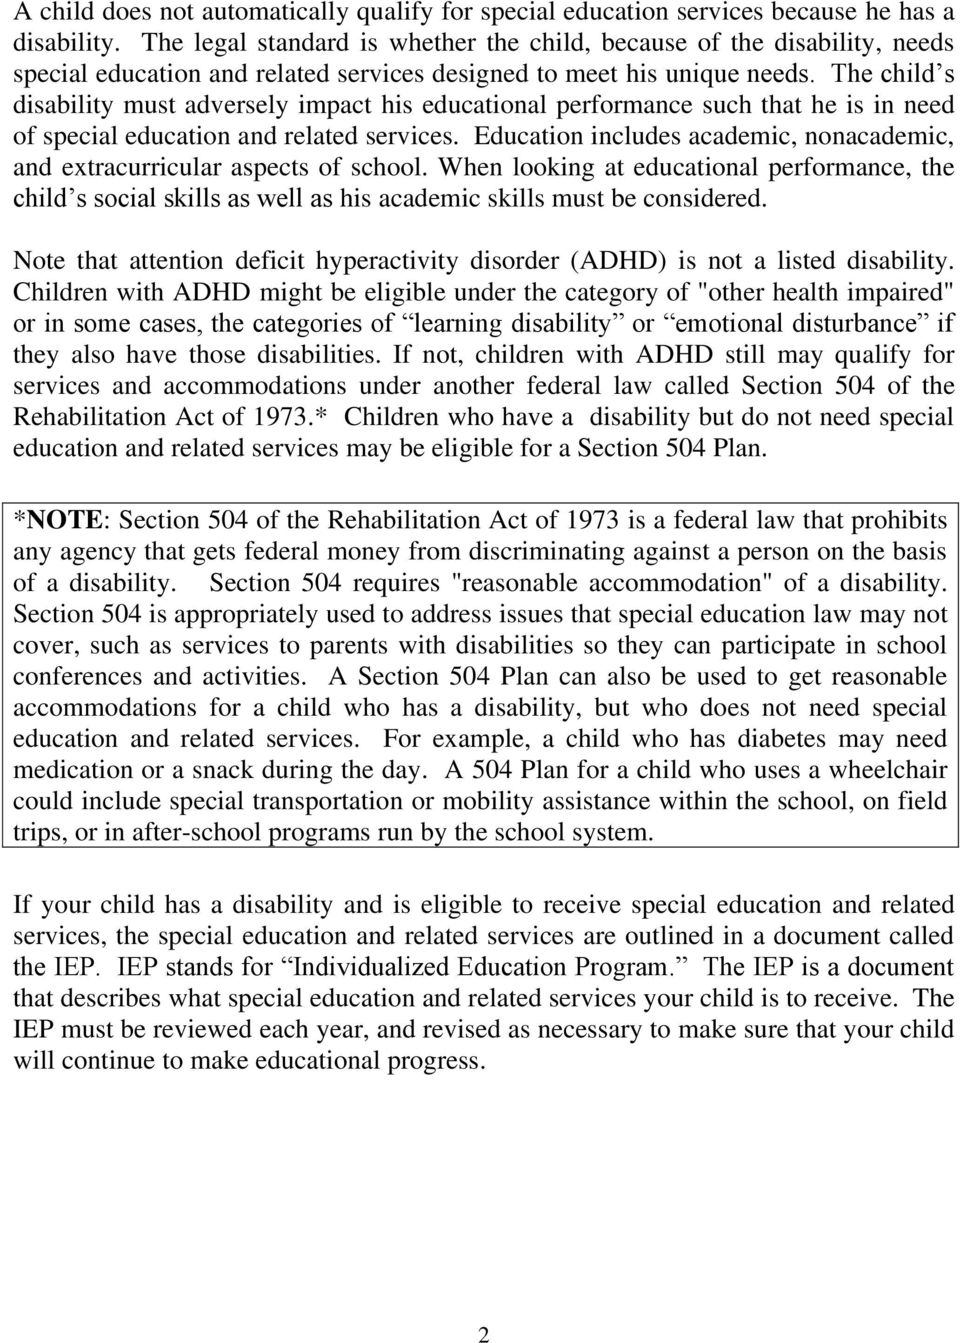 The child s disability must adversely impact his educational performance such that he is in need of special education and related services.